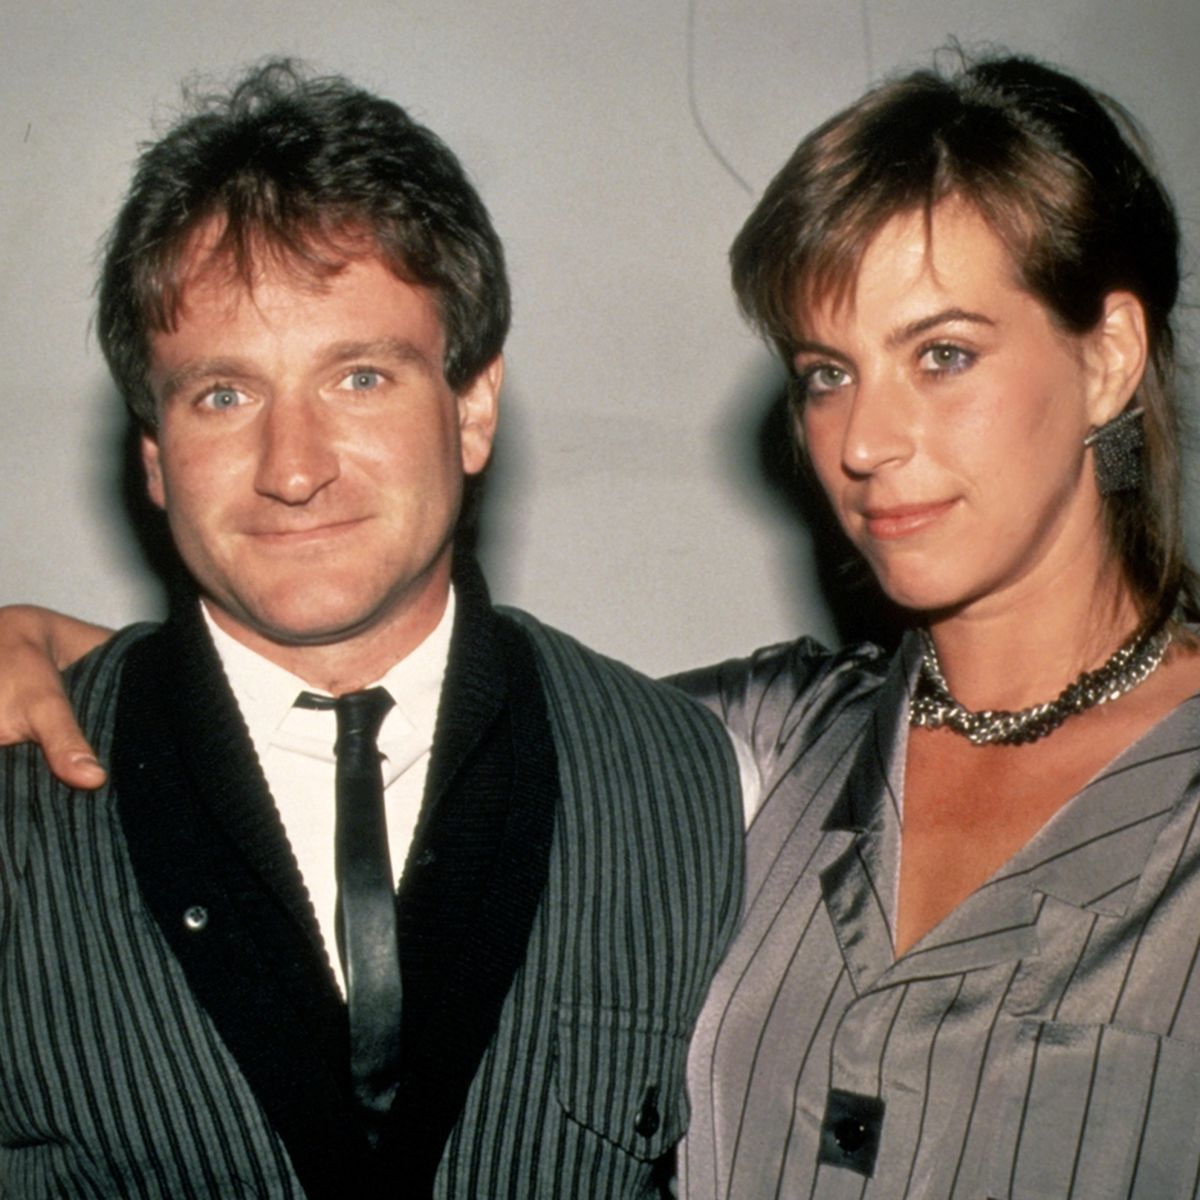 Robin Williams First Wife Valerie Velardi Opens Up About His Infidelity During Their Marriage 9celebrity Find the perfect valerie velardi stock photos and editorial news pictures from getty images. robin williams first wife valerie